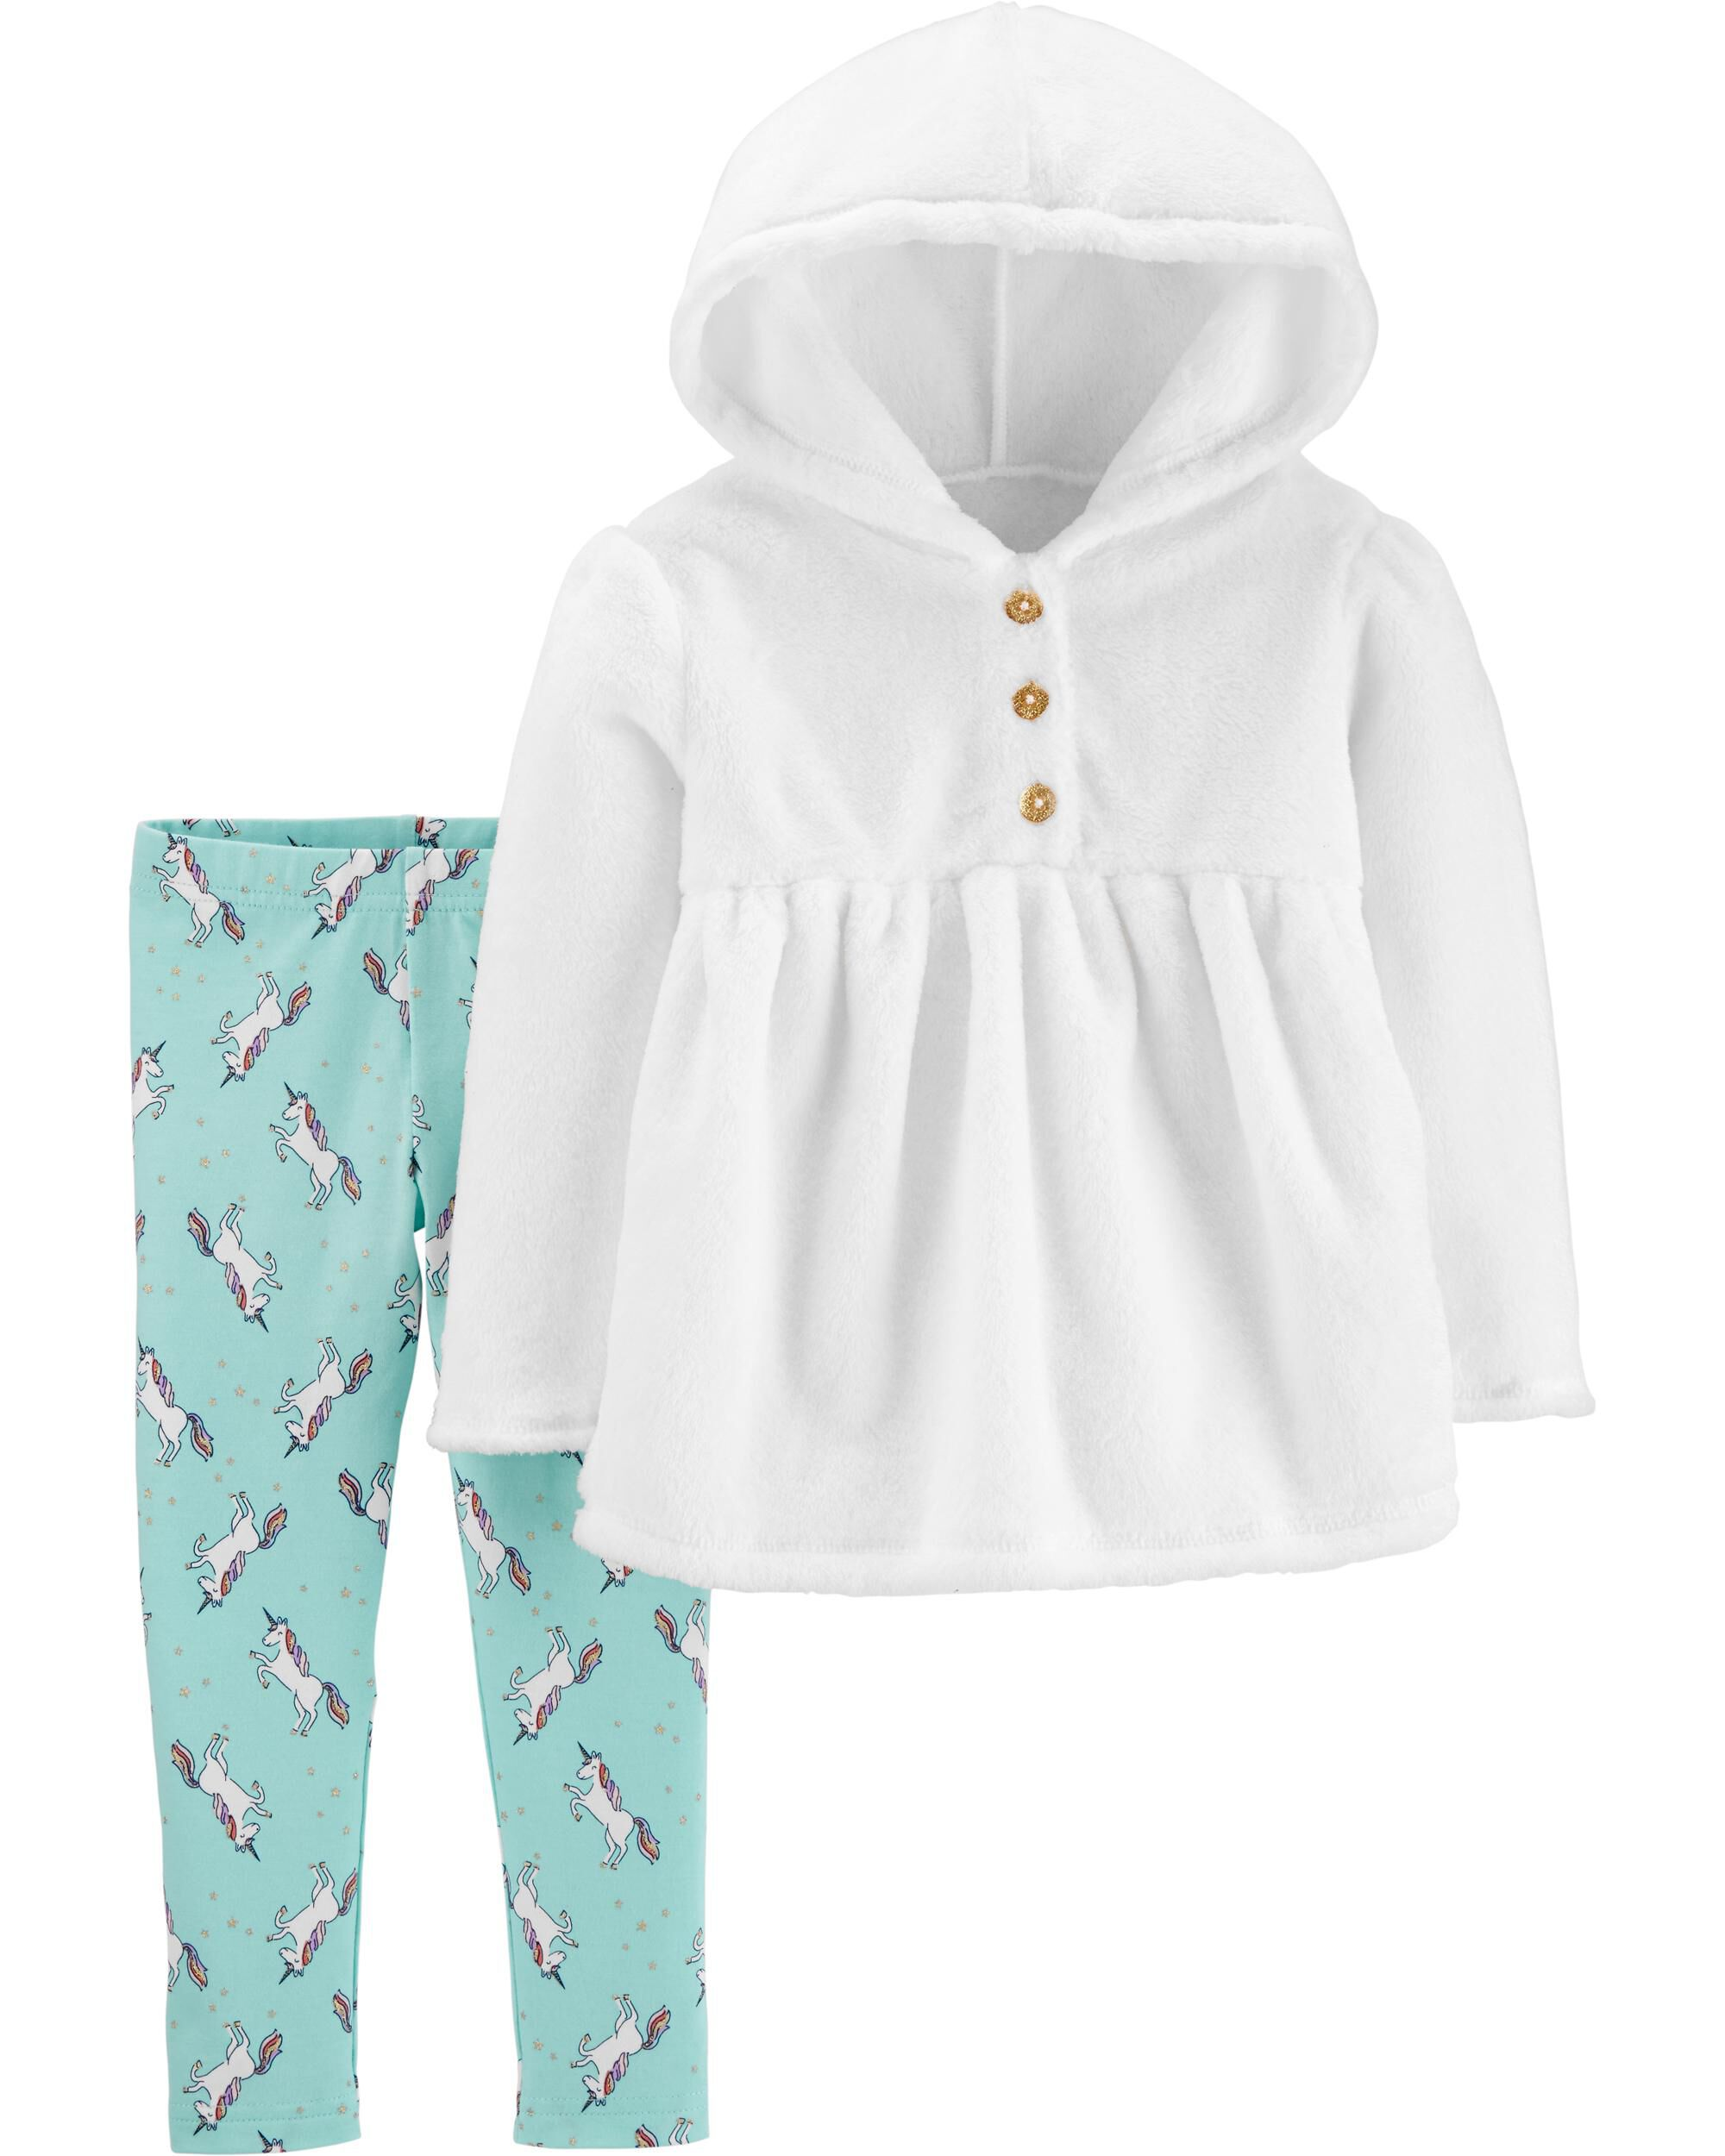 *CLEARANCE* 2-Piece Fuzzy Hooded Top & Unicorn Legging Set